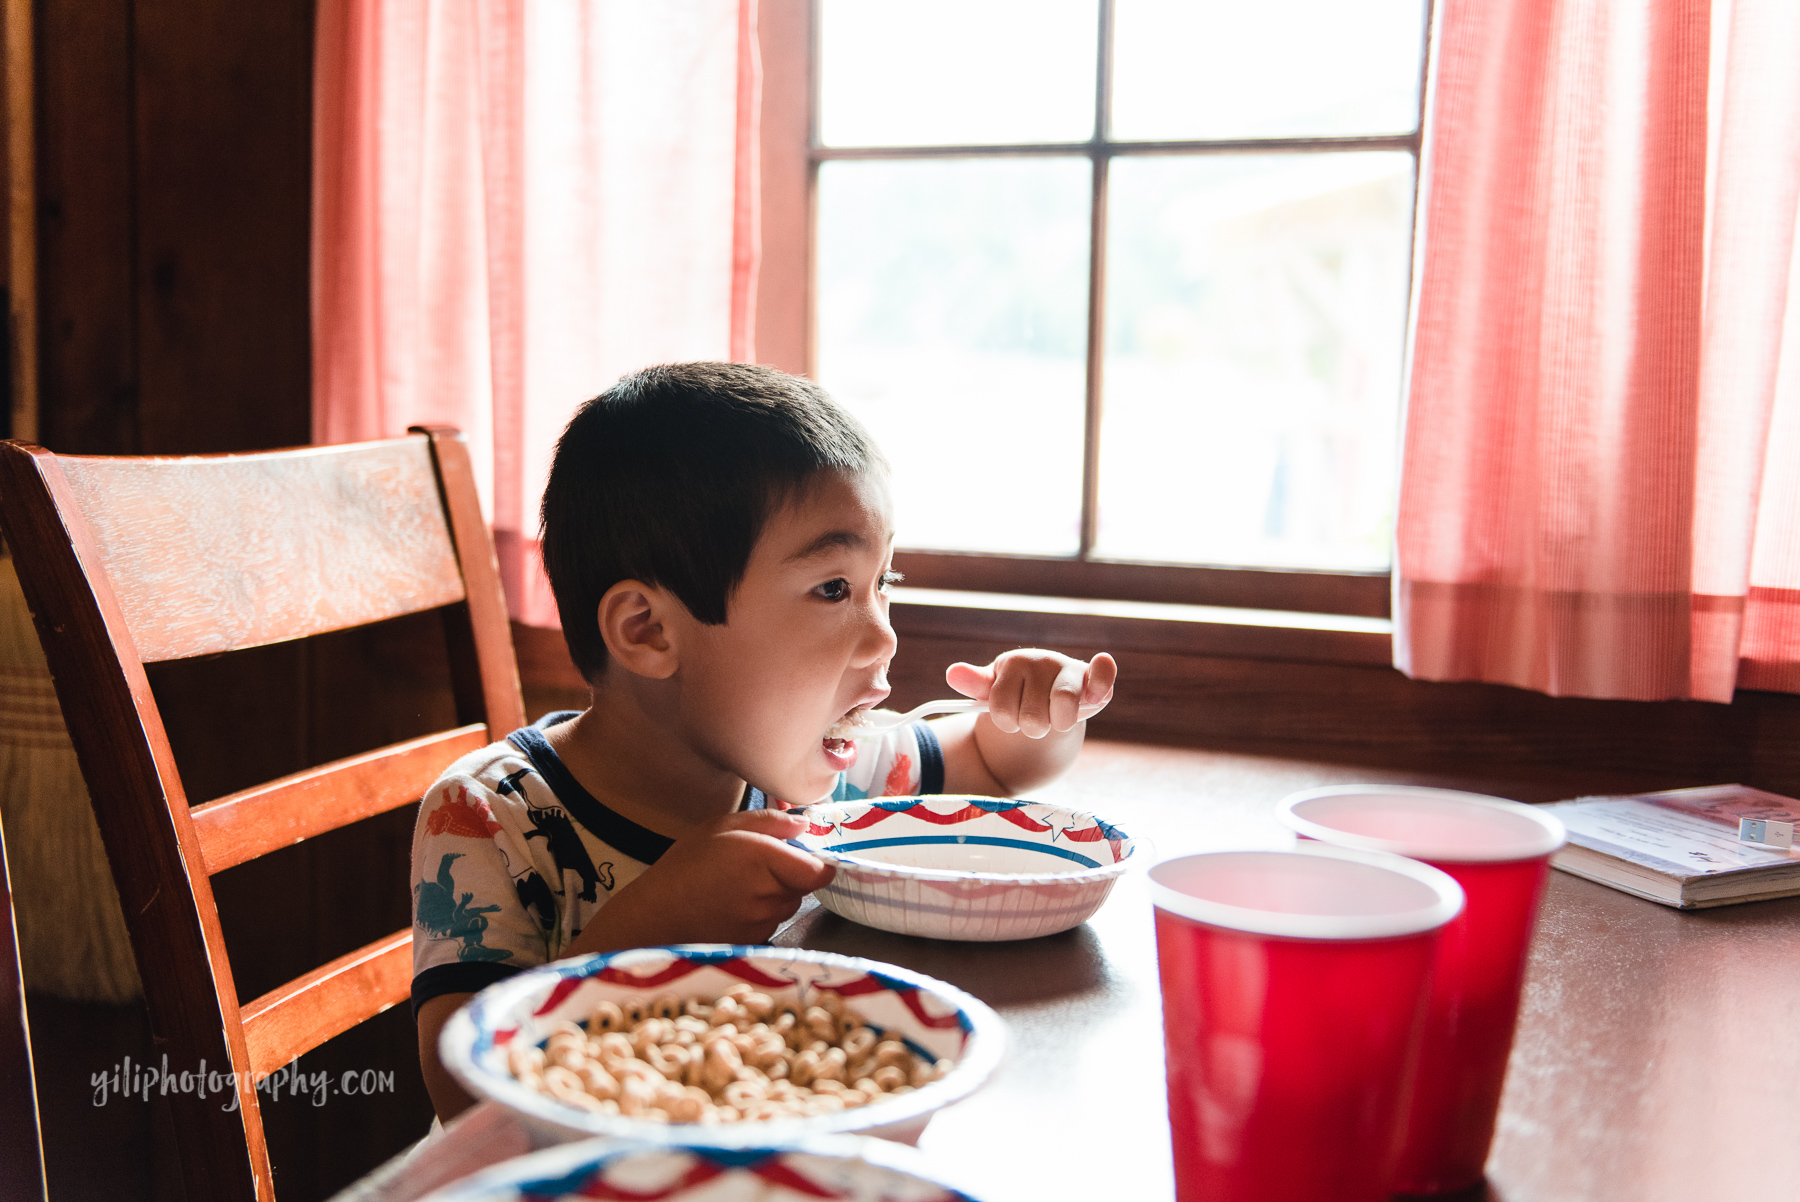 seattle boy eating breakfast inside cabin at cama beach state park